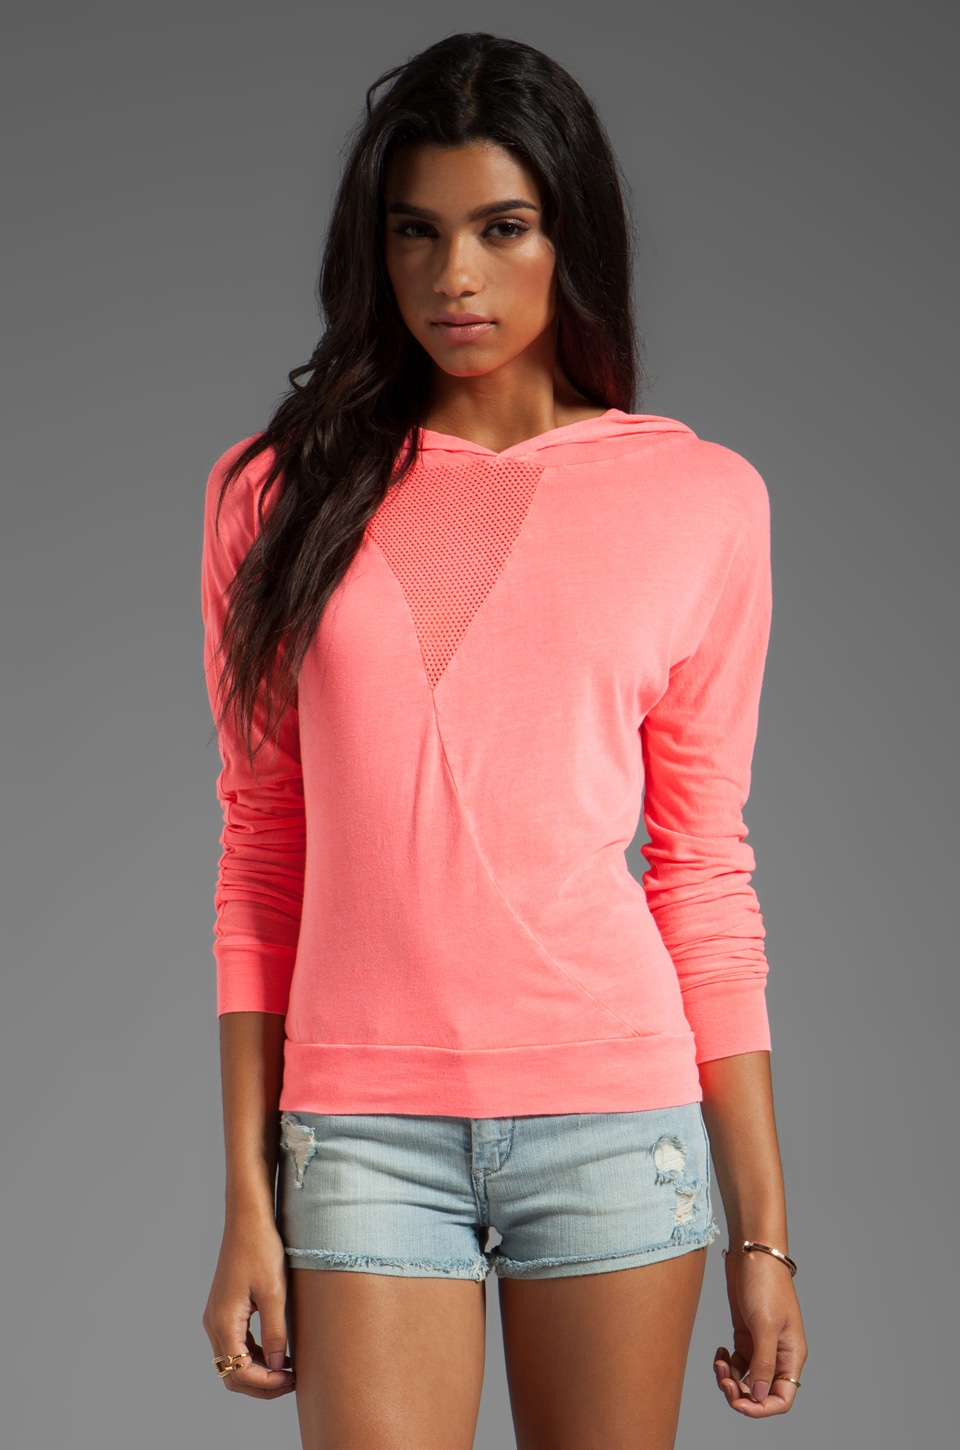 SOLOW Graphic Mesh Dolman Pull Over in Mimosa